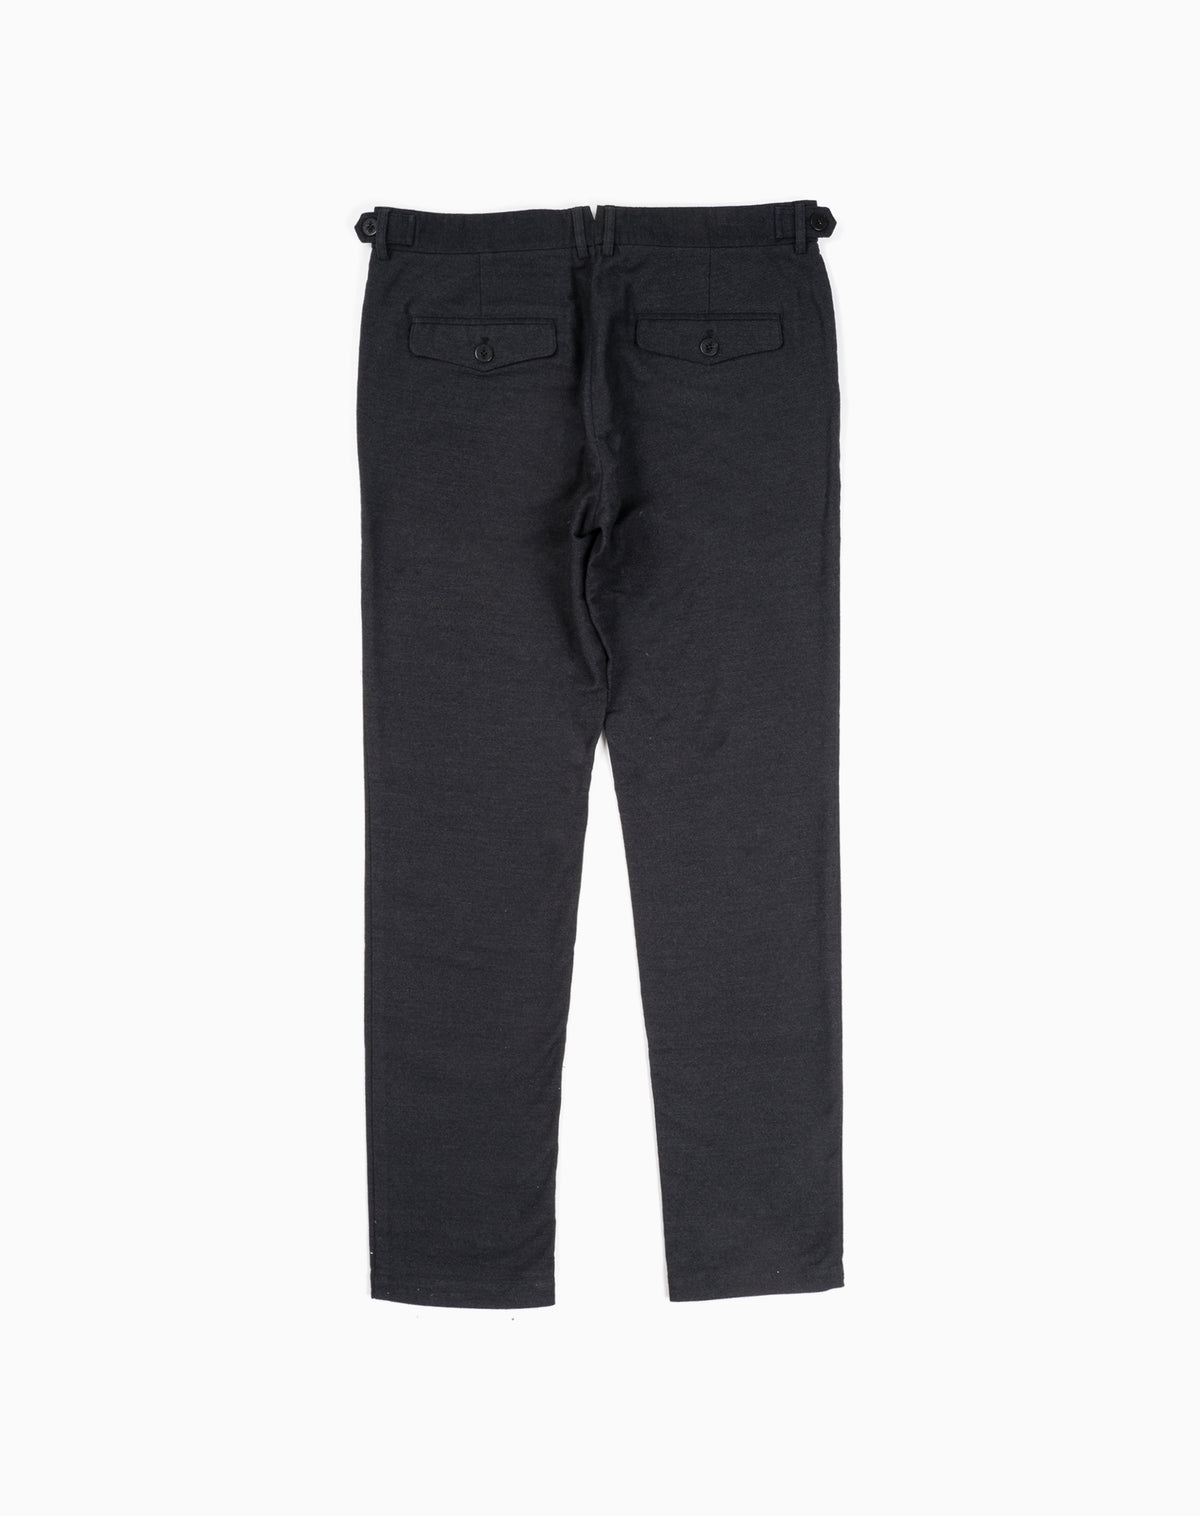 Gates Pant in Moleskin